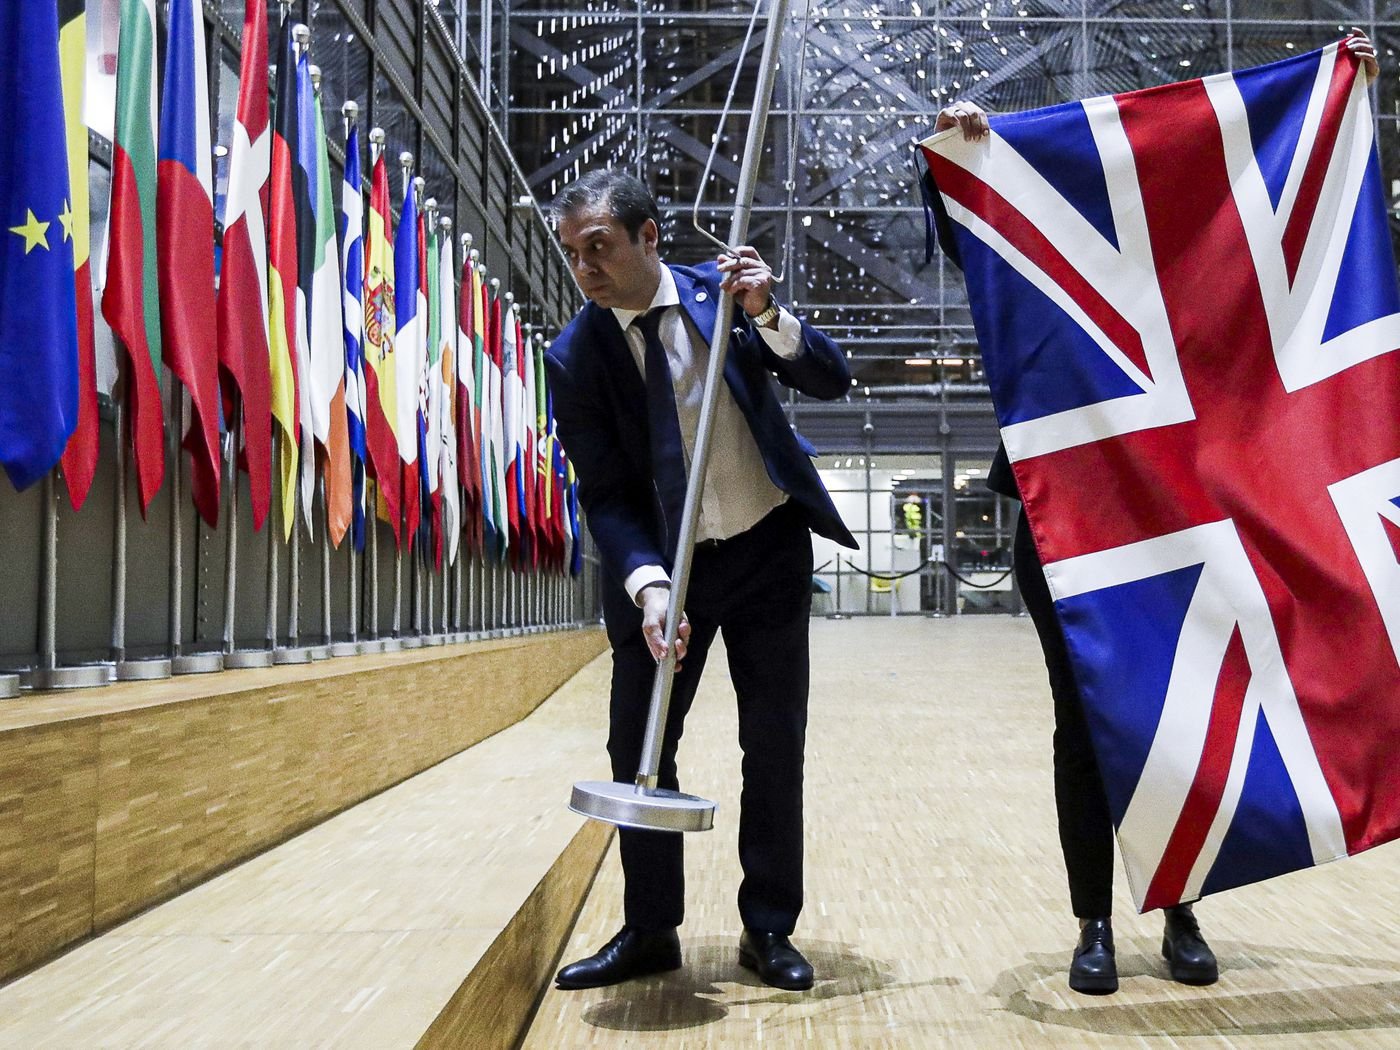 Brexit: Watch as EU officials solemnly take down the UK flag - Vox